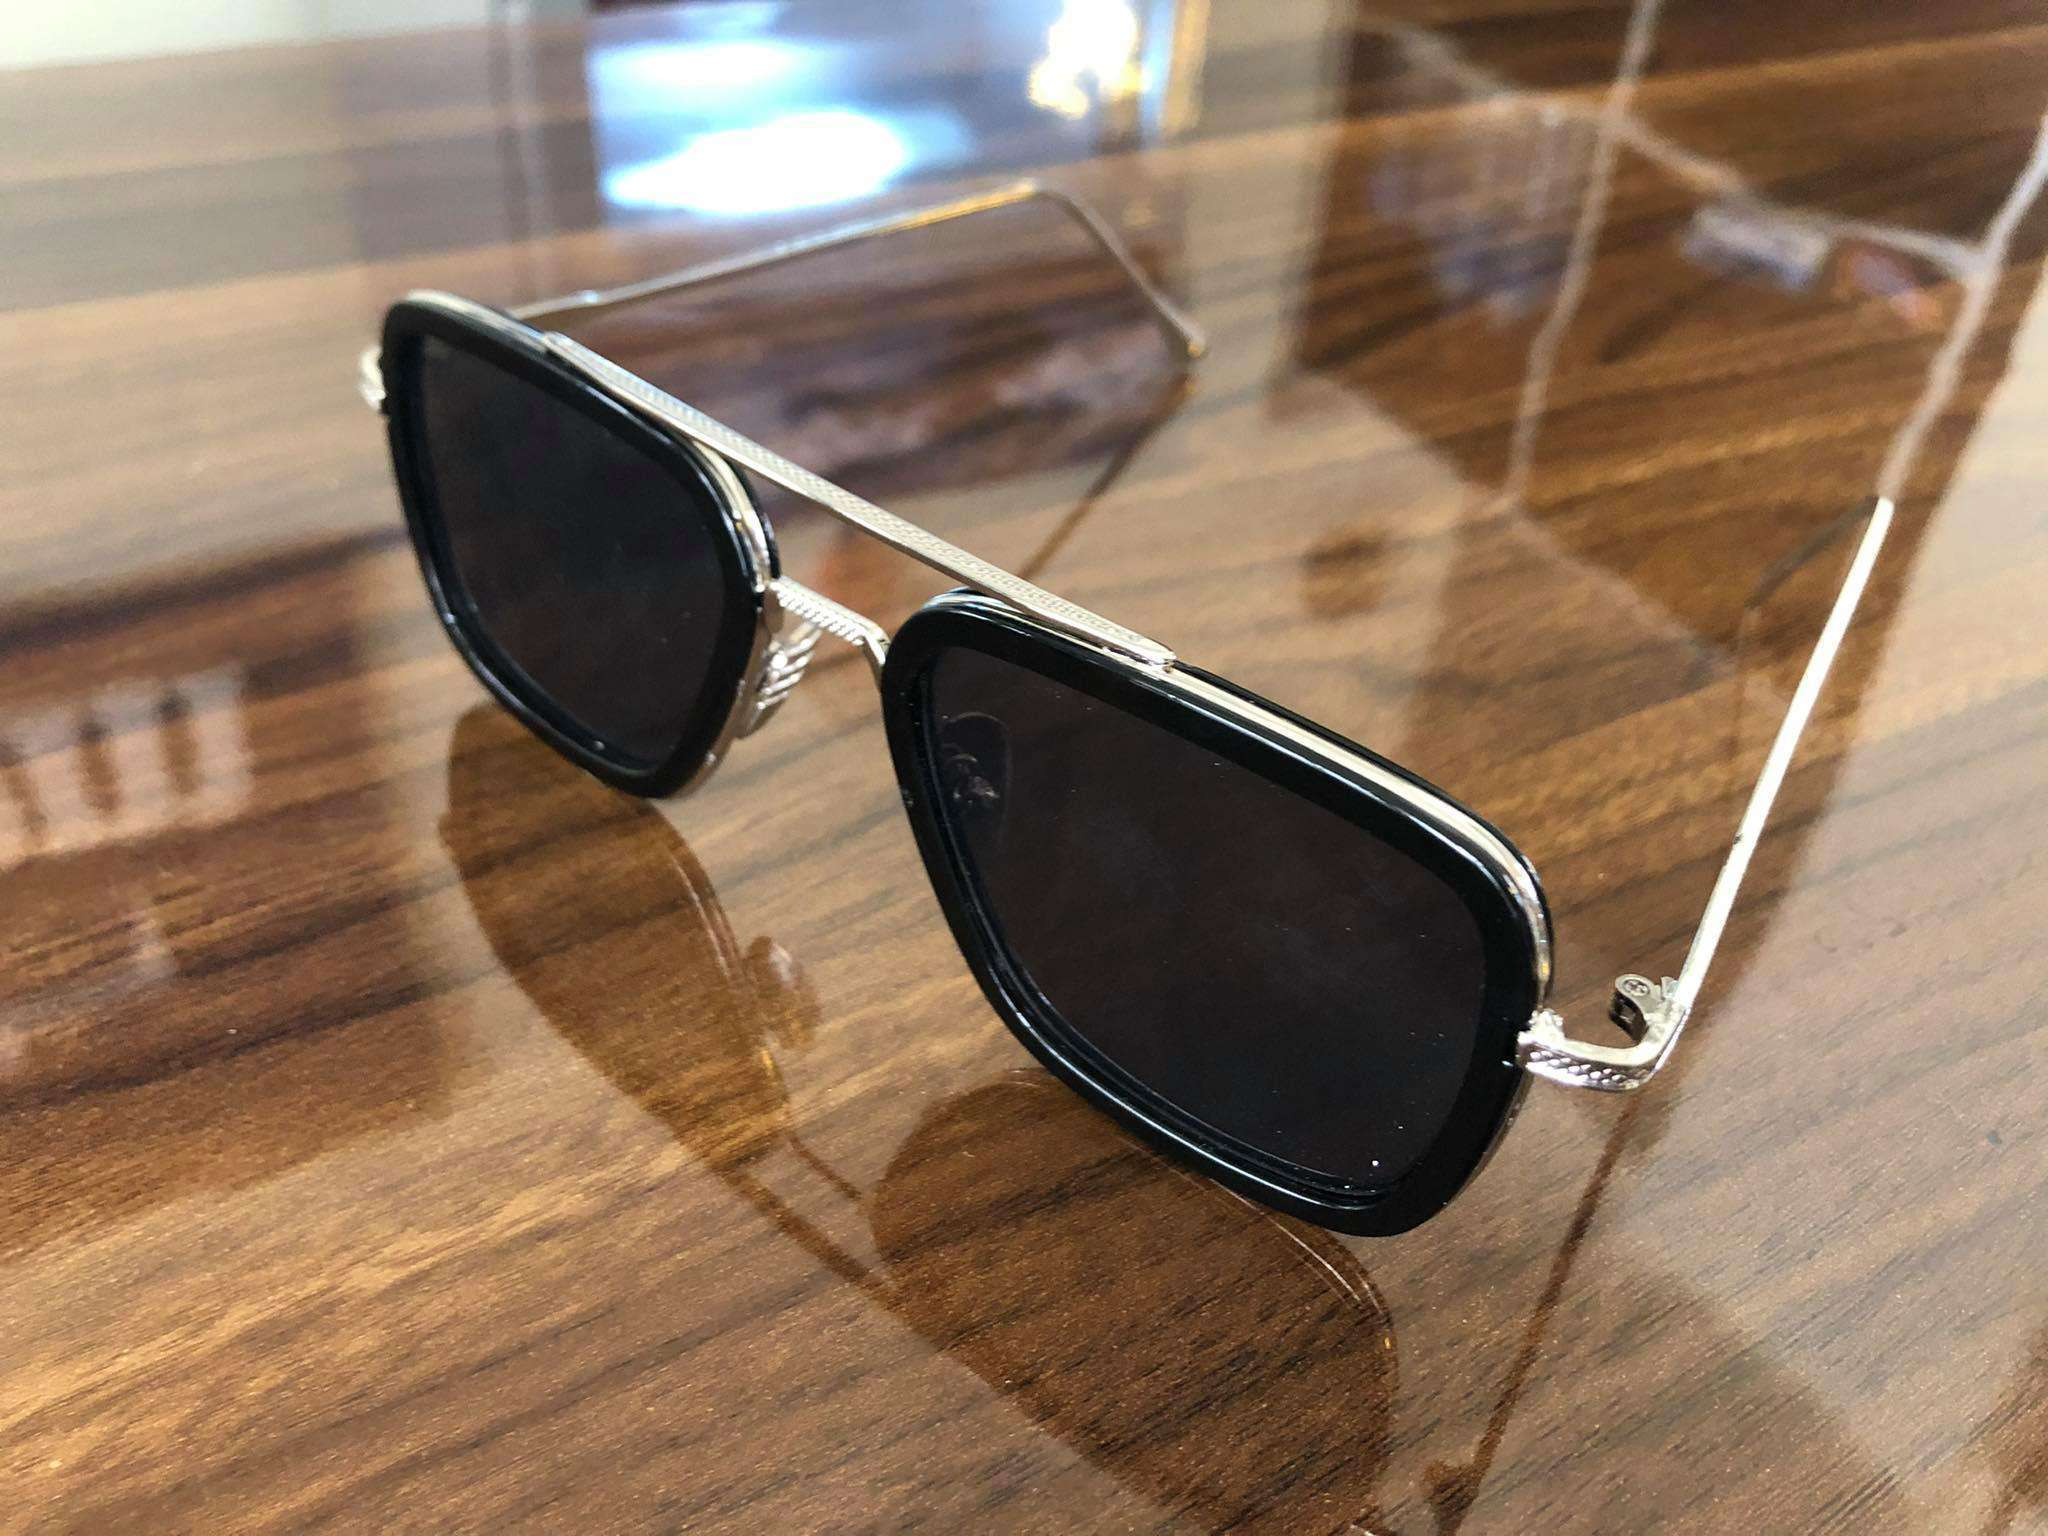 Sunglasses SG-14